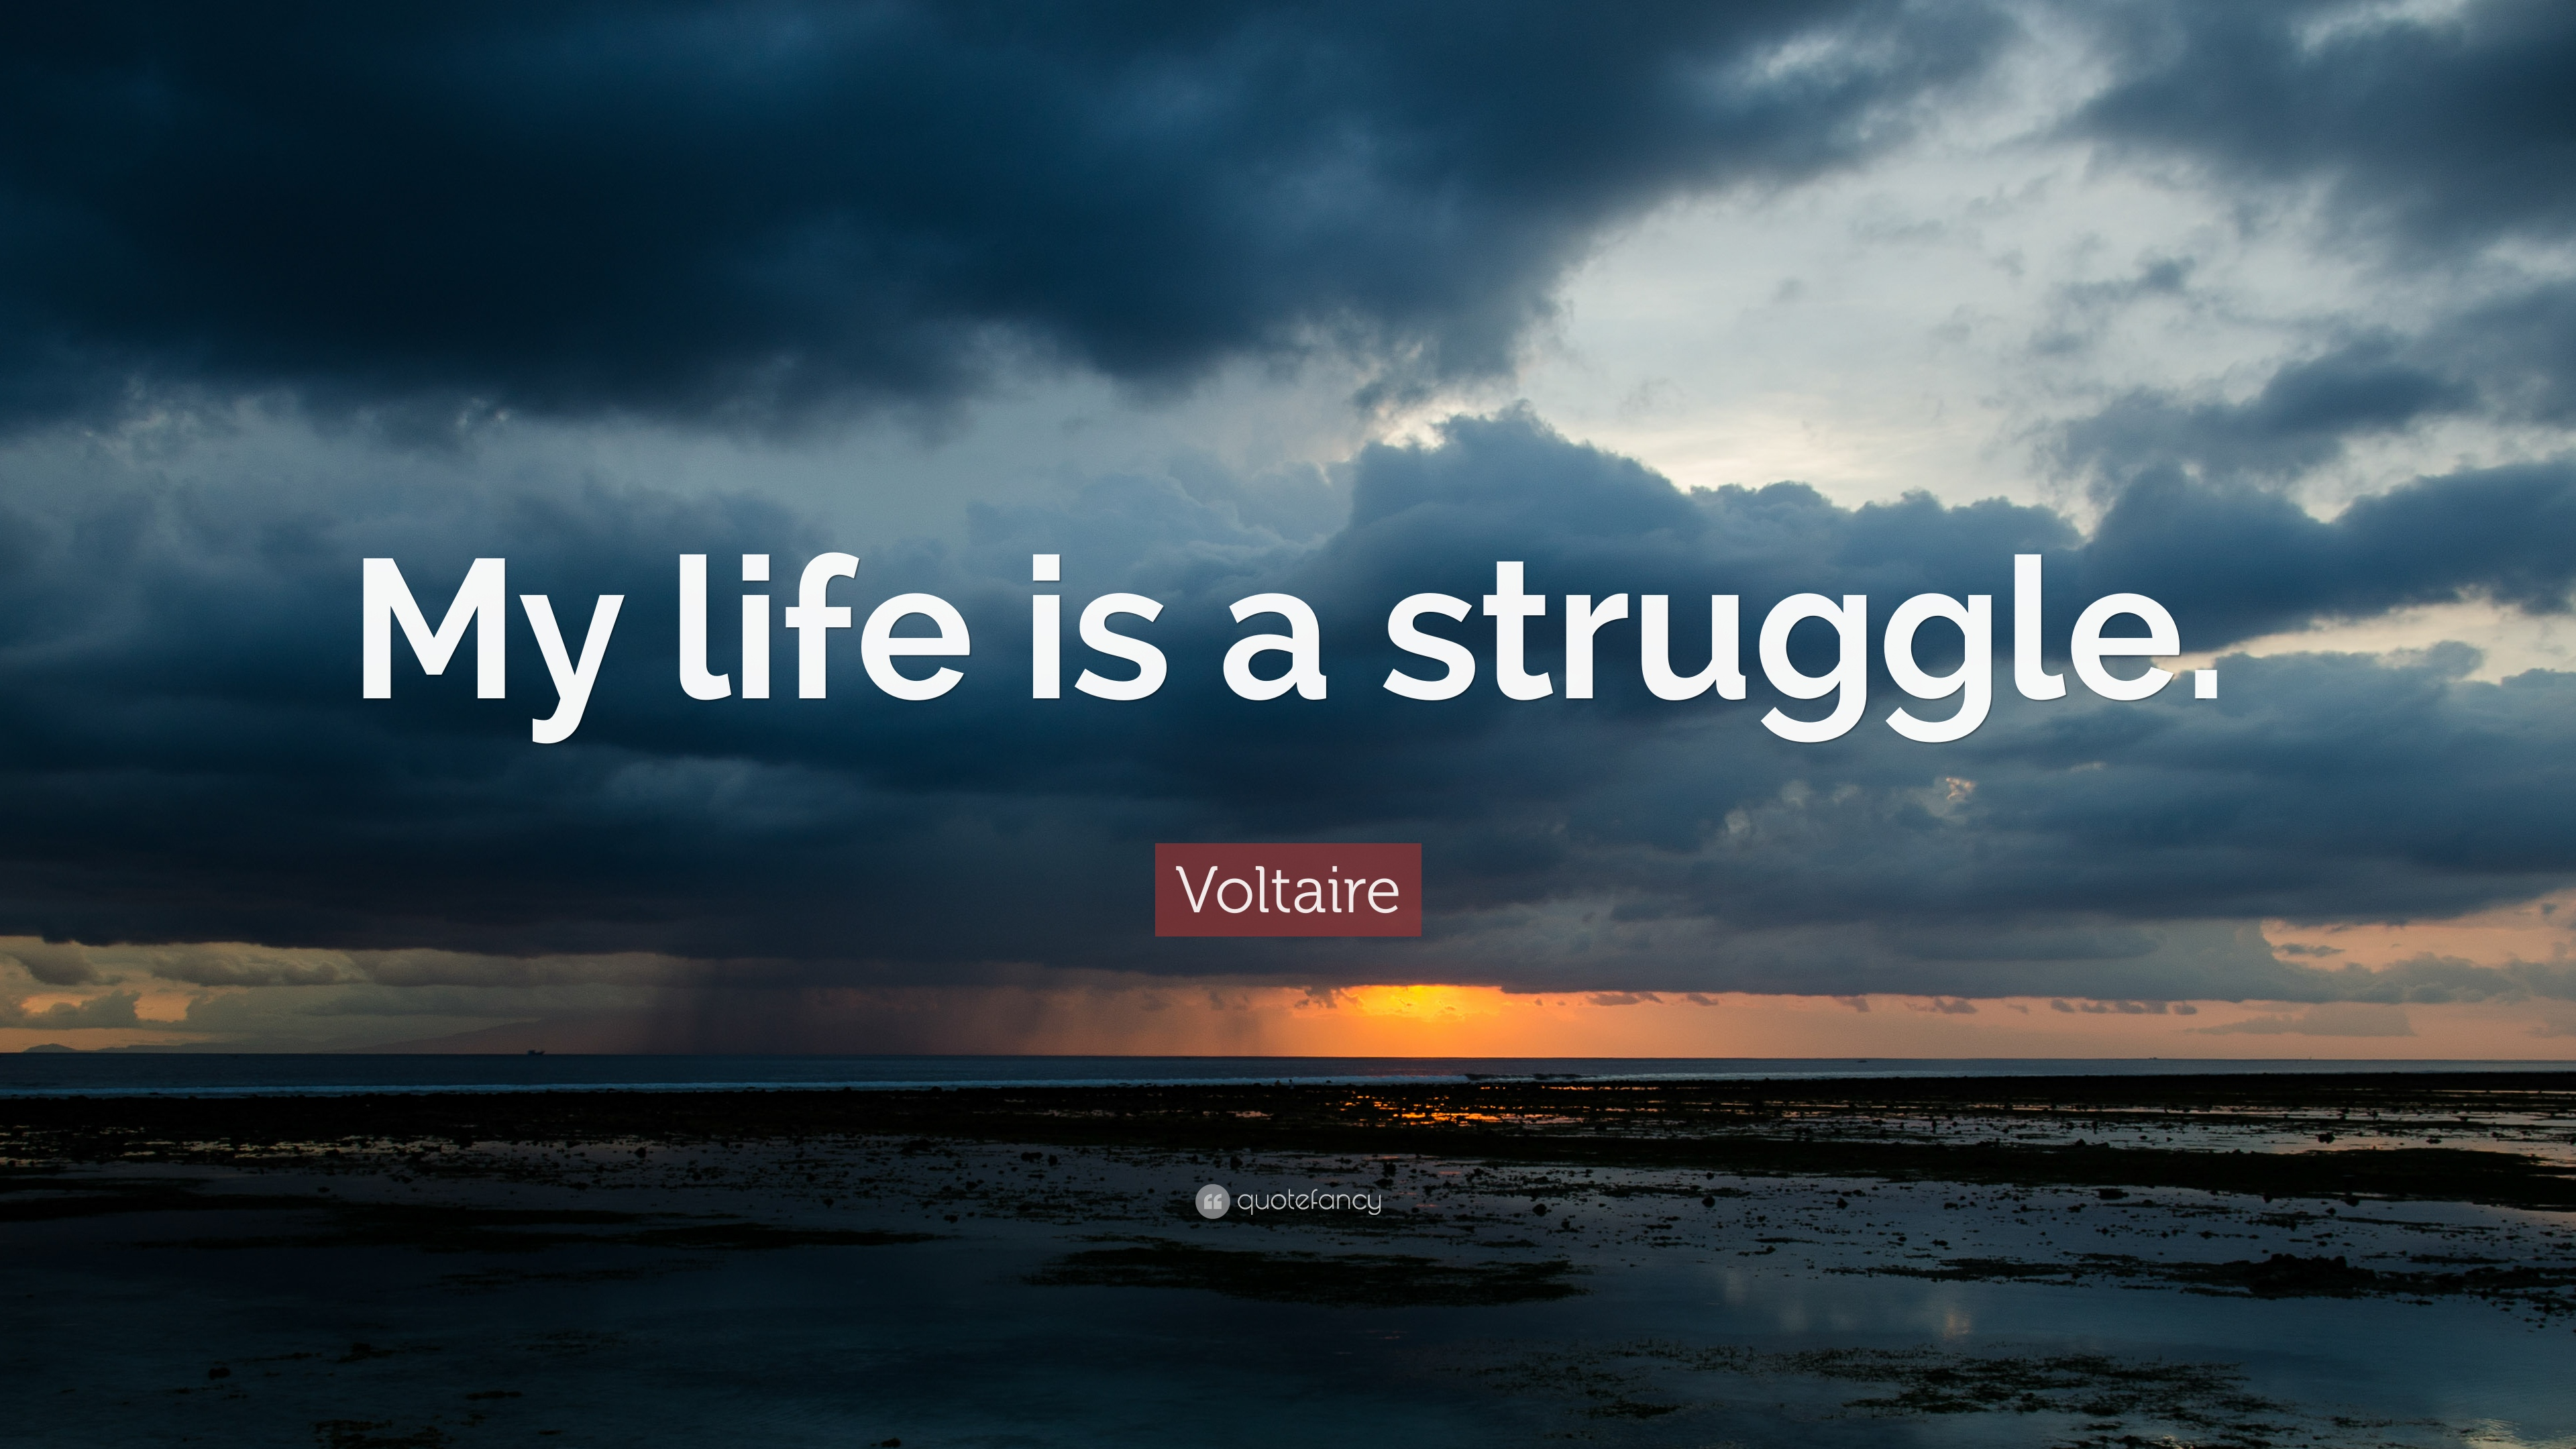 Quotes About Life Struggles Struggle Quotes 40 Wallpapers  Quotefancy